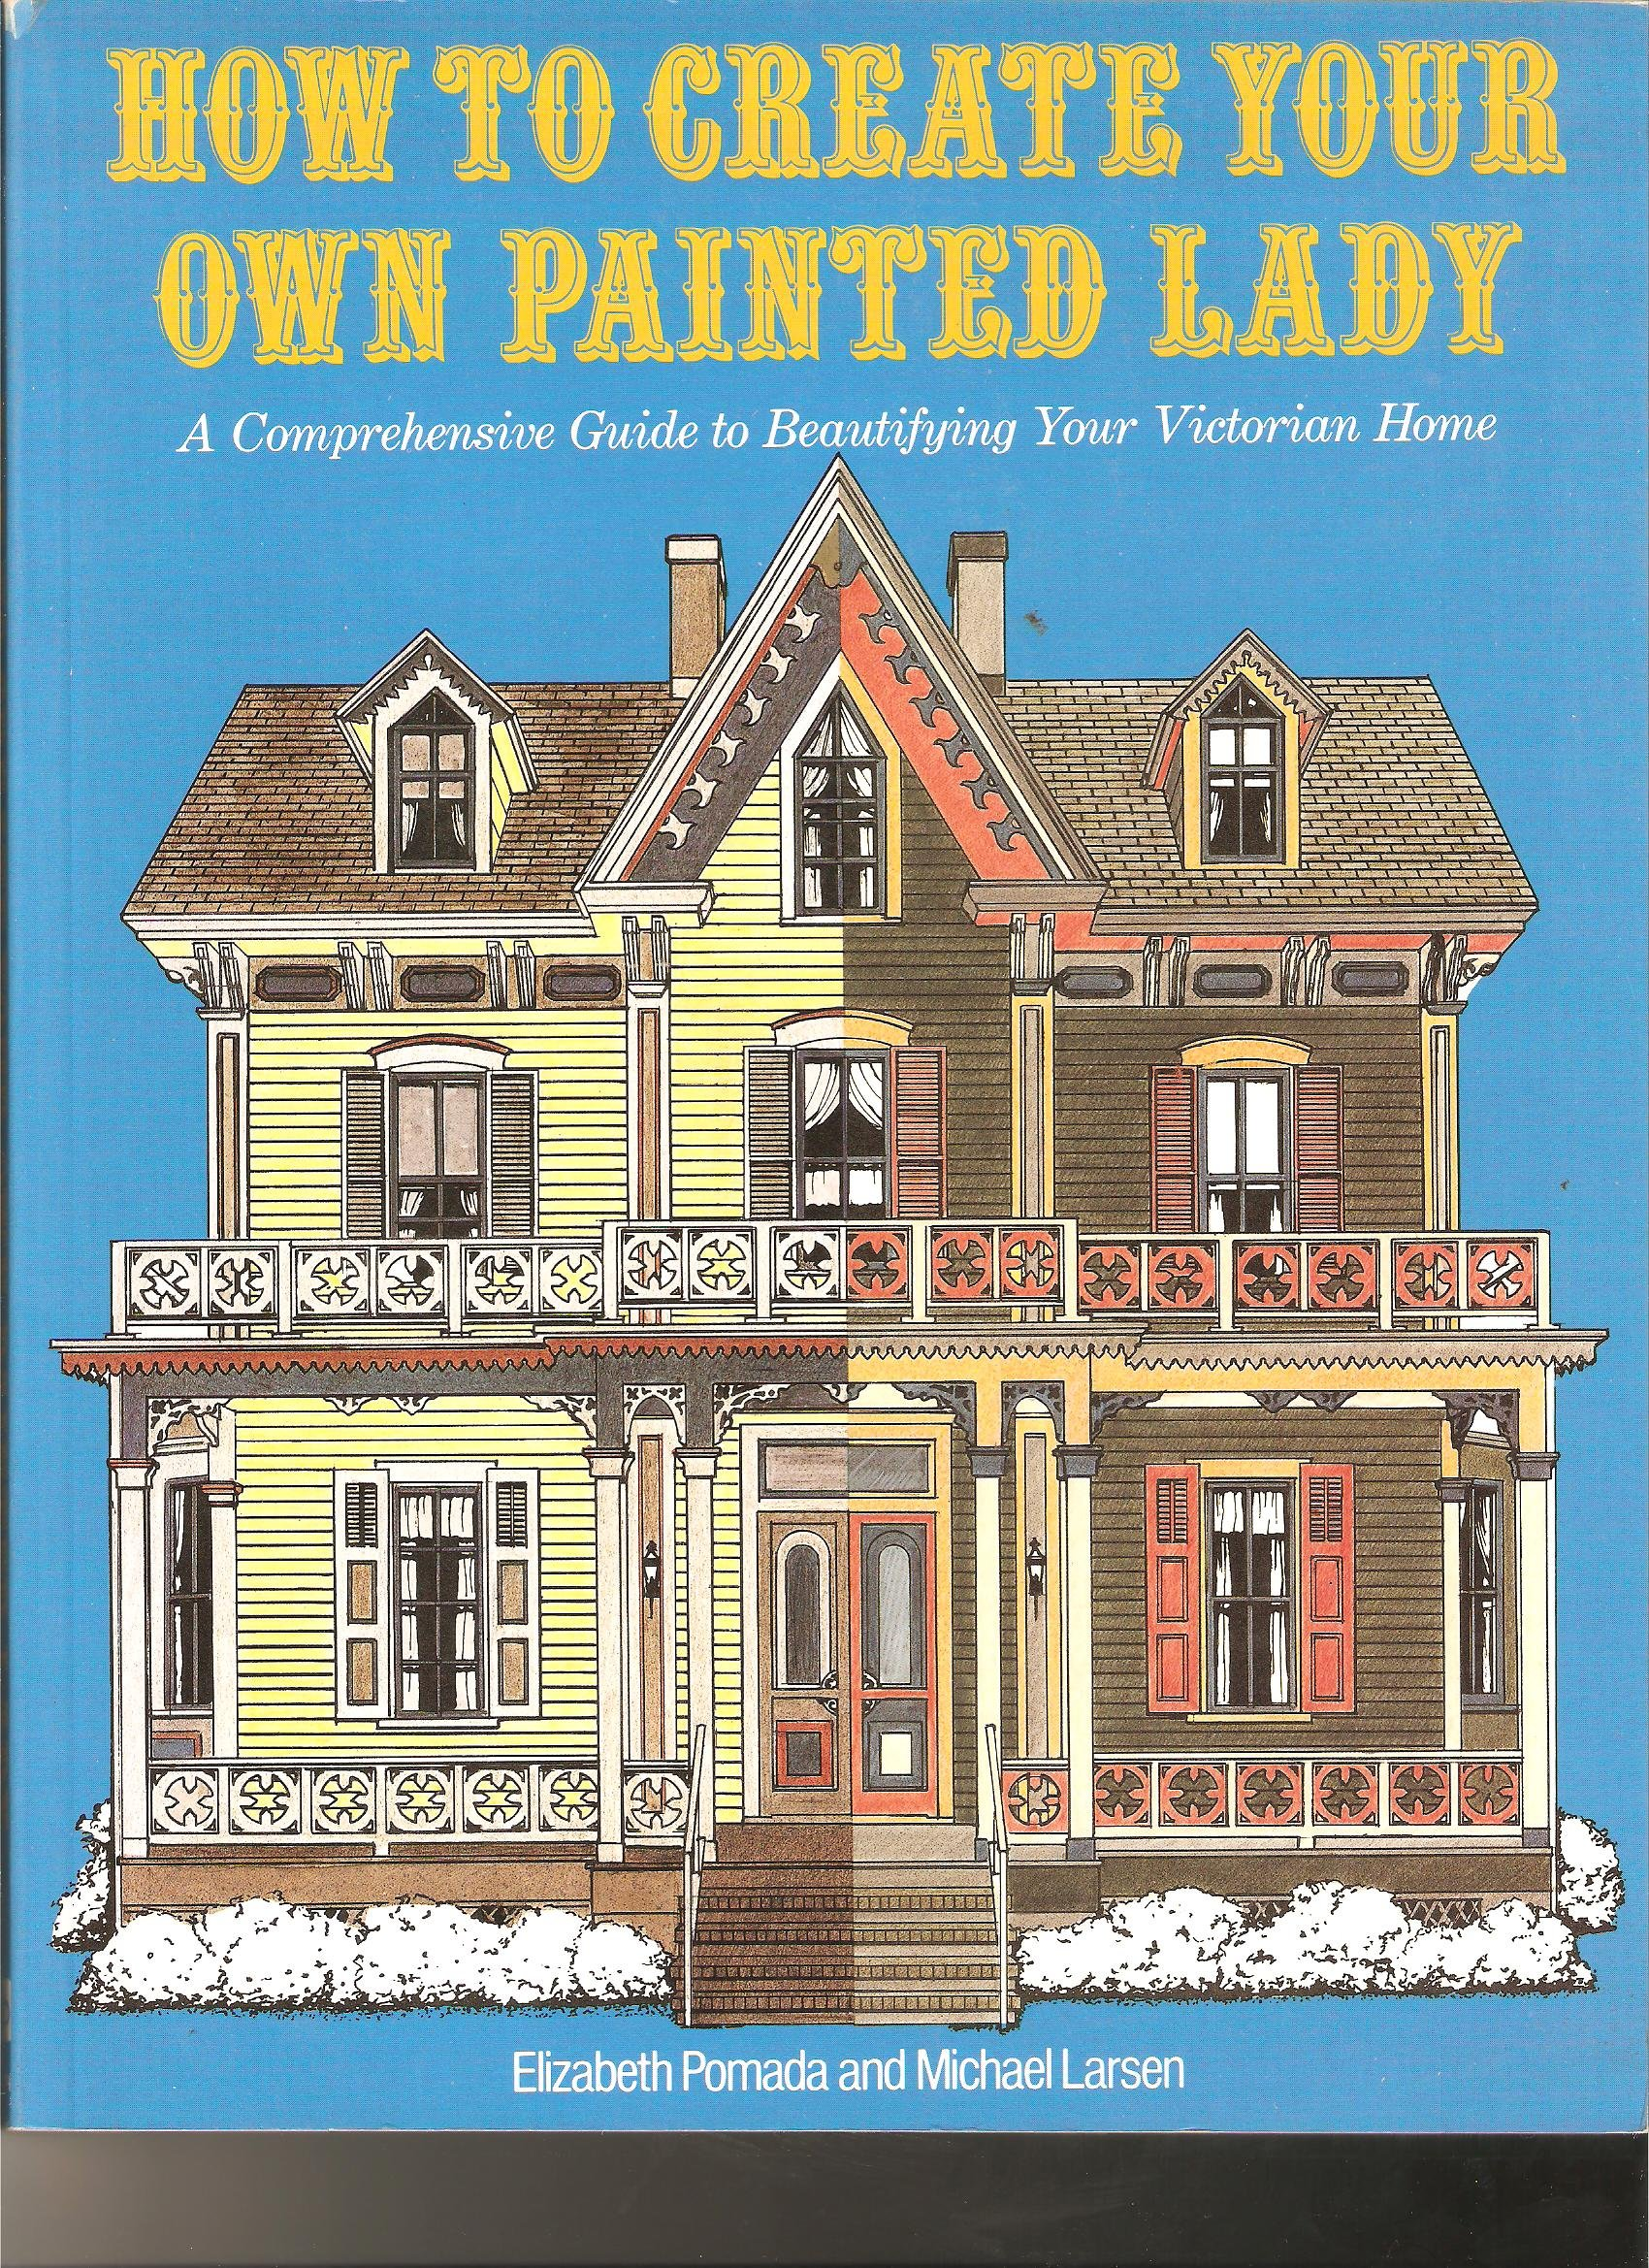 How To Create Your Own Painted Lady A Comprehensive Guide To Beautifying Your Victorian Home Pomada Elizabeth Larsen Michael 9780525484745 Amazon Com Books